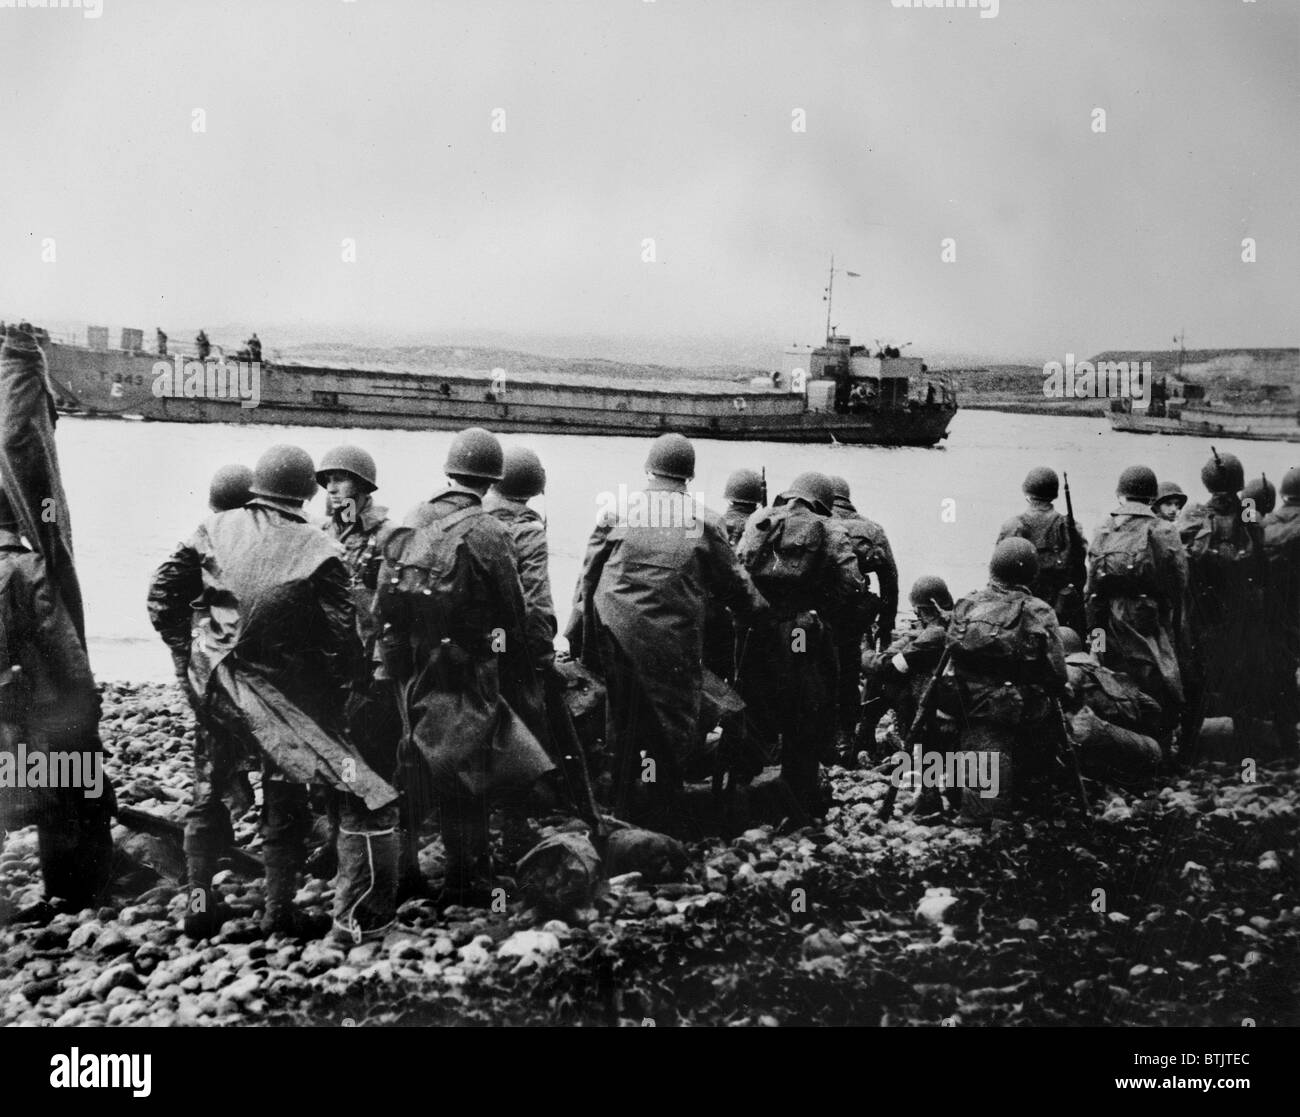 World War II, U.S. soldiers along the shore, circa 1940-1946. Stock Photo